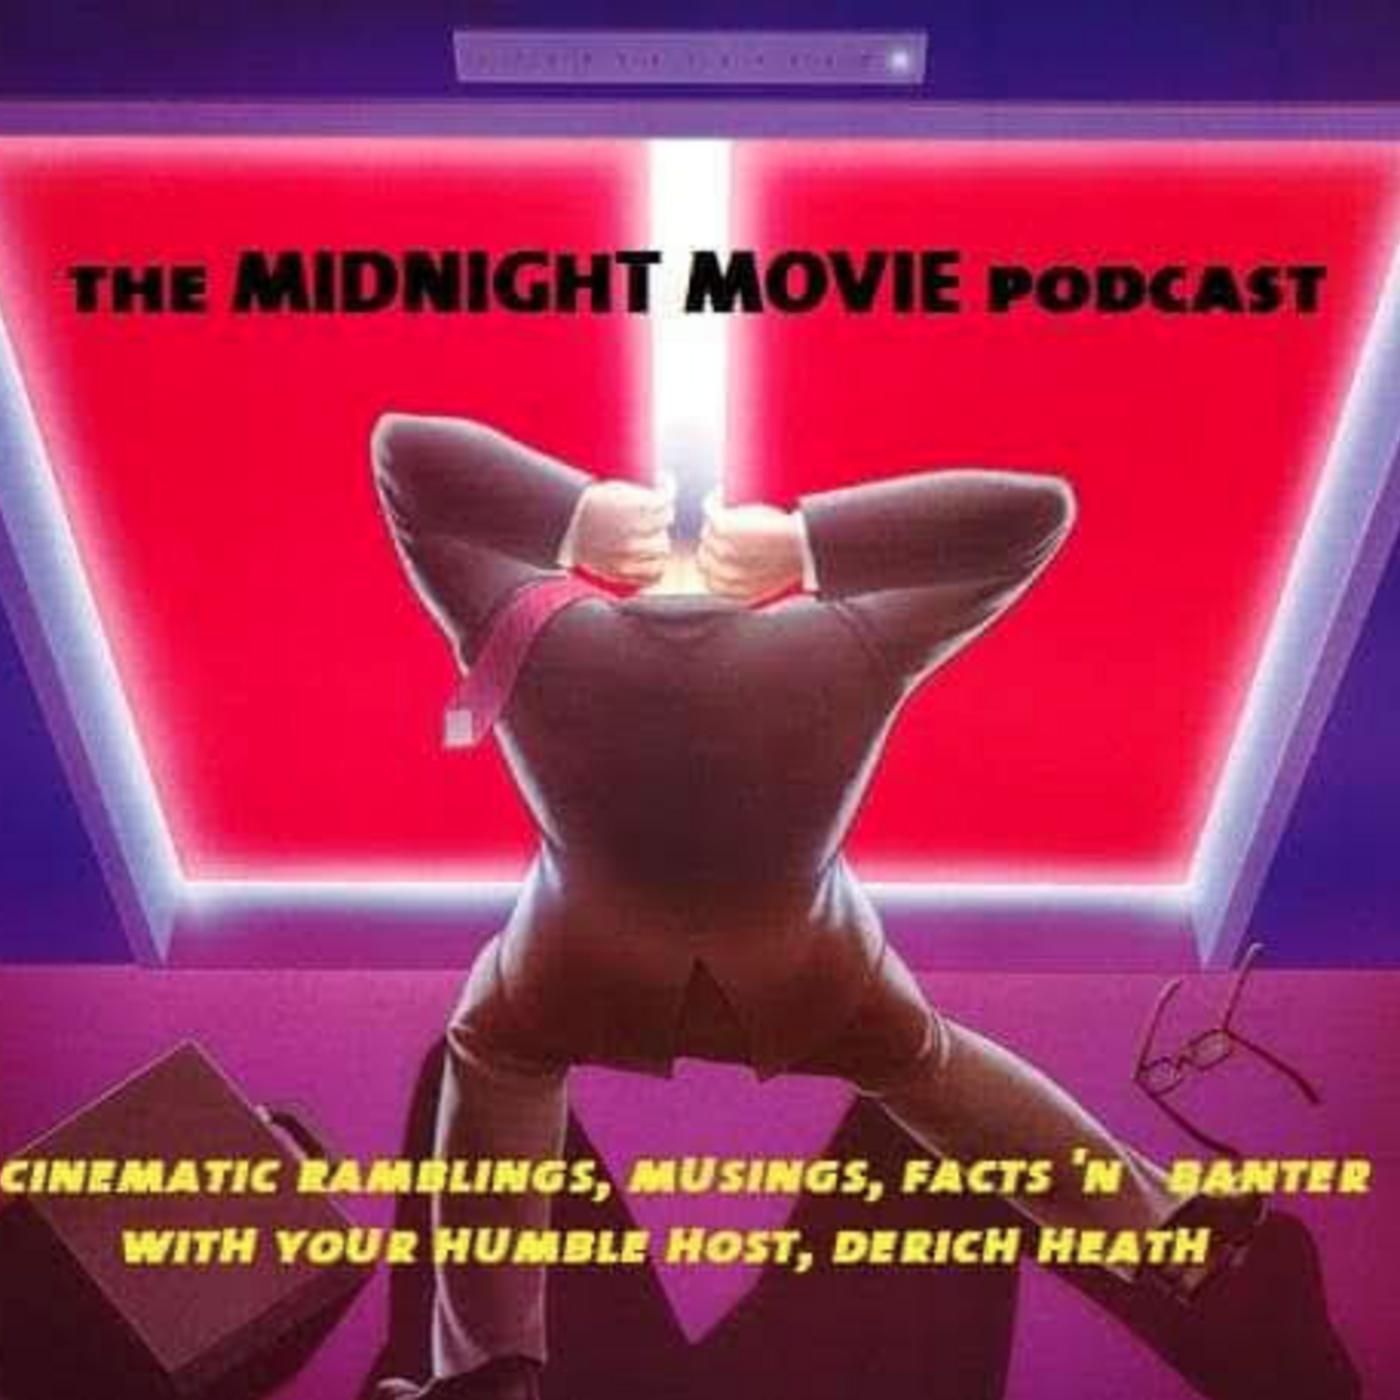 The Midnight Movie Podcast